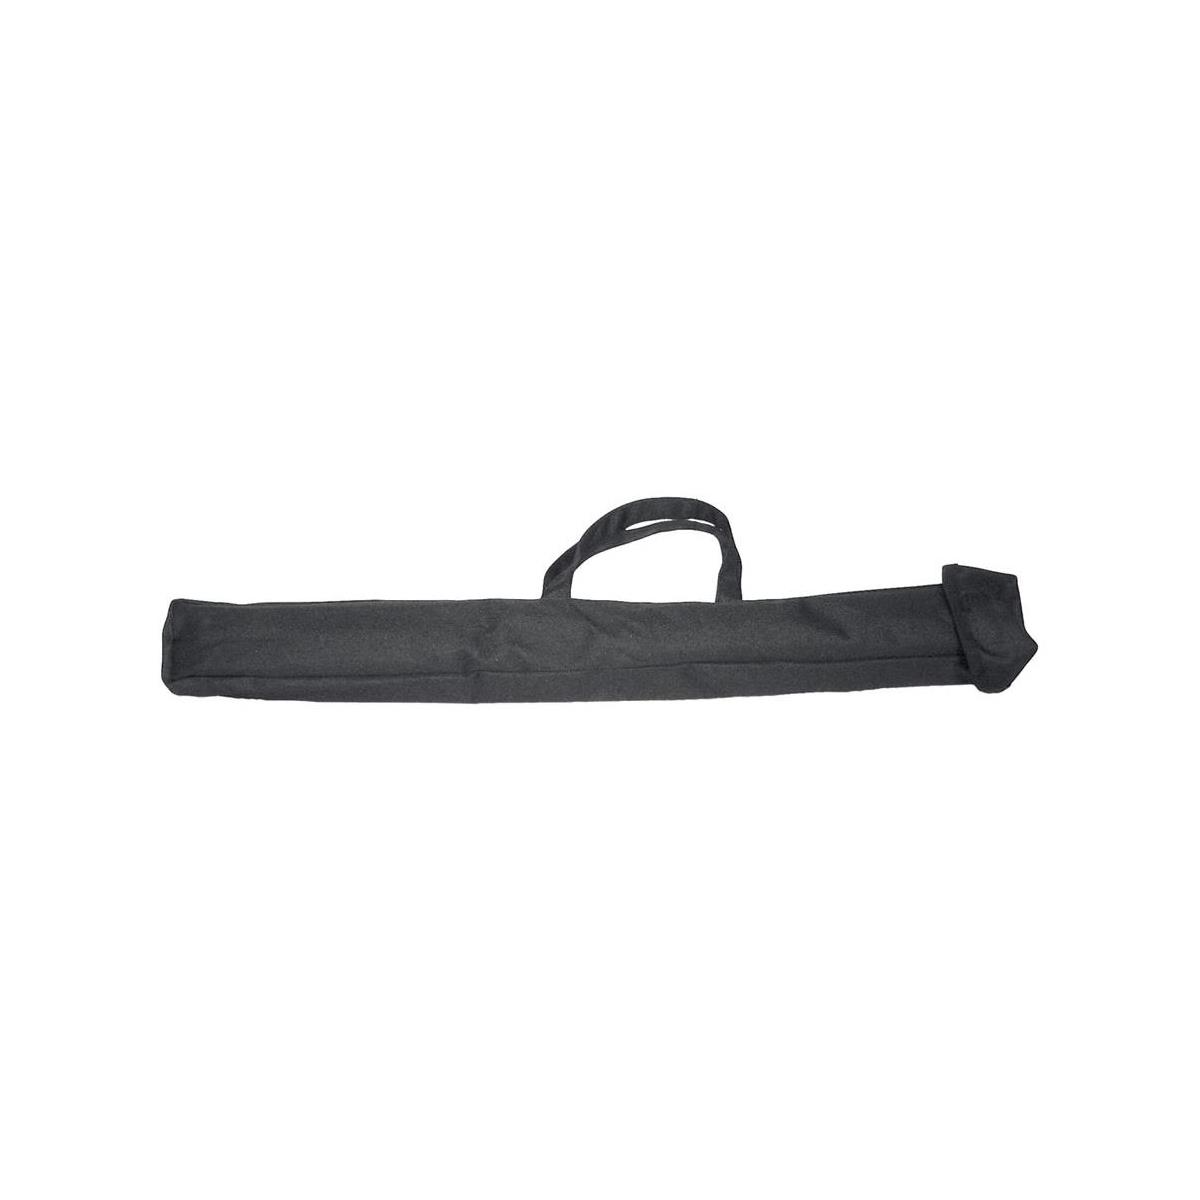 KACES MS101NY MUSIC STAND CARRY BAG